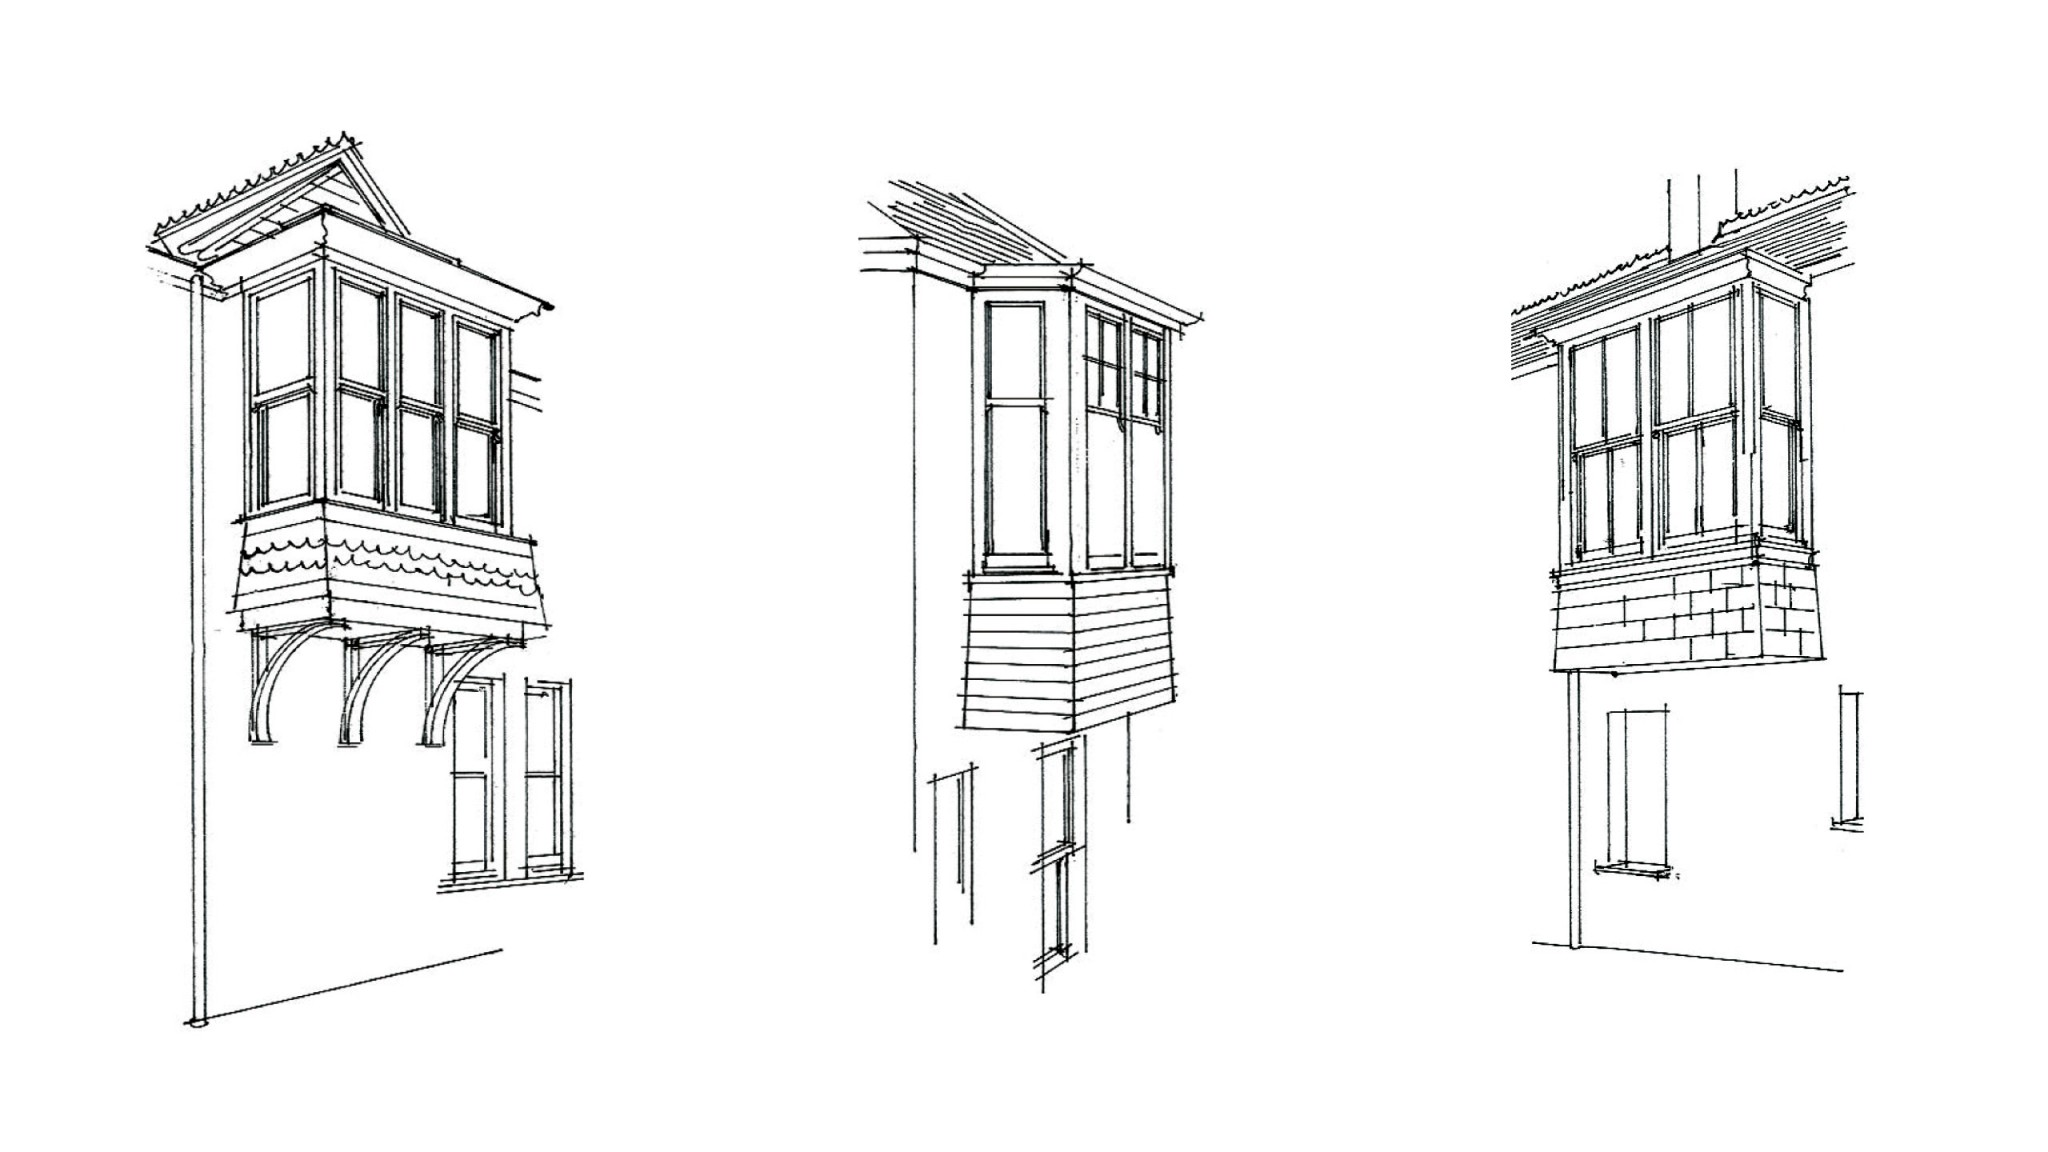 Sketch of the exterior of a building, focusing on the windows